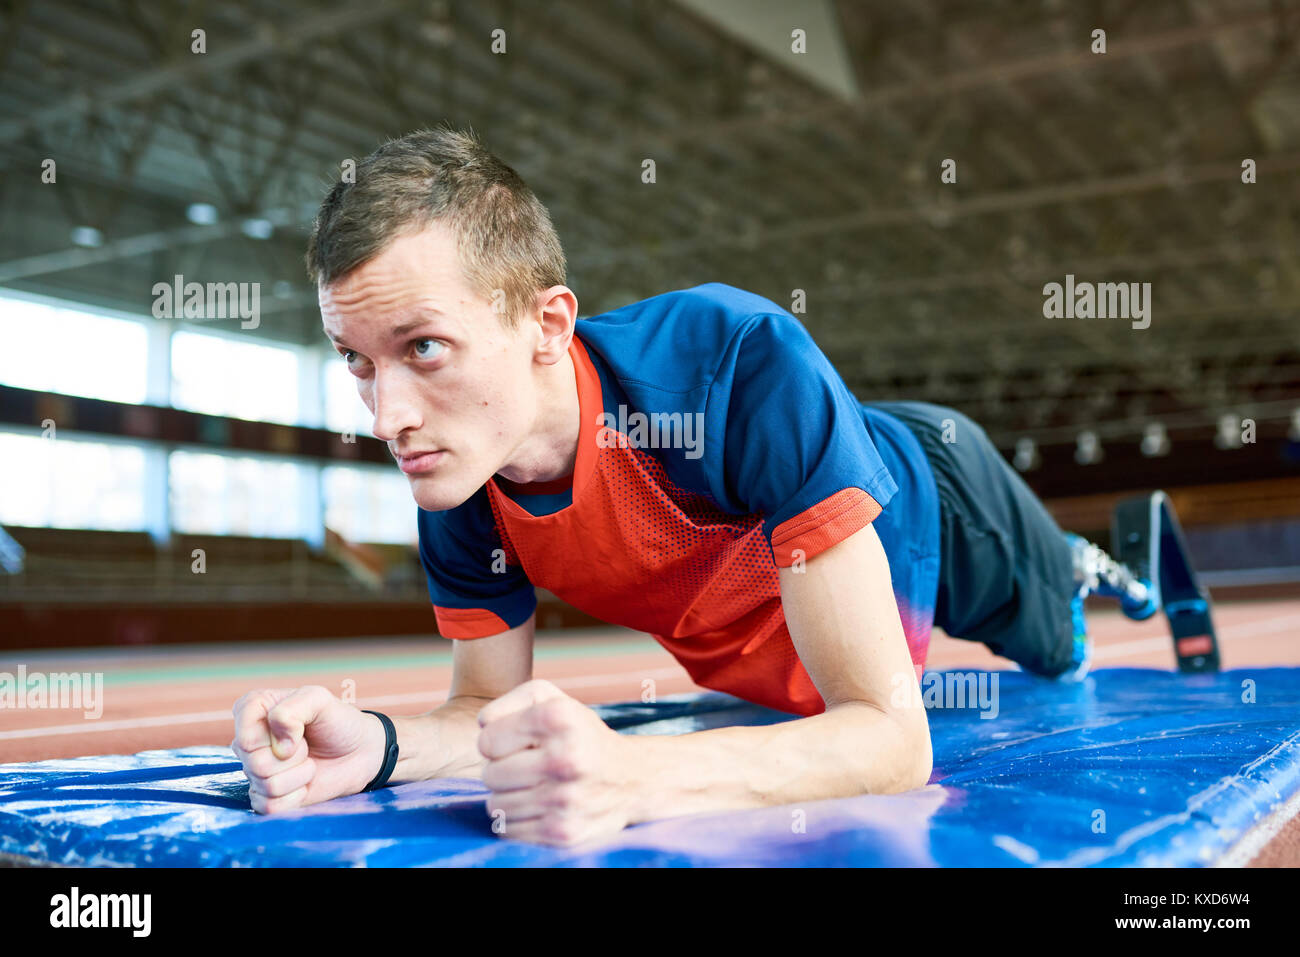 Motivated Handicapped Sportsman in Training - Stock Image